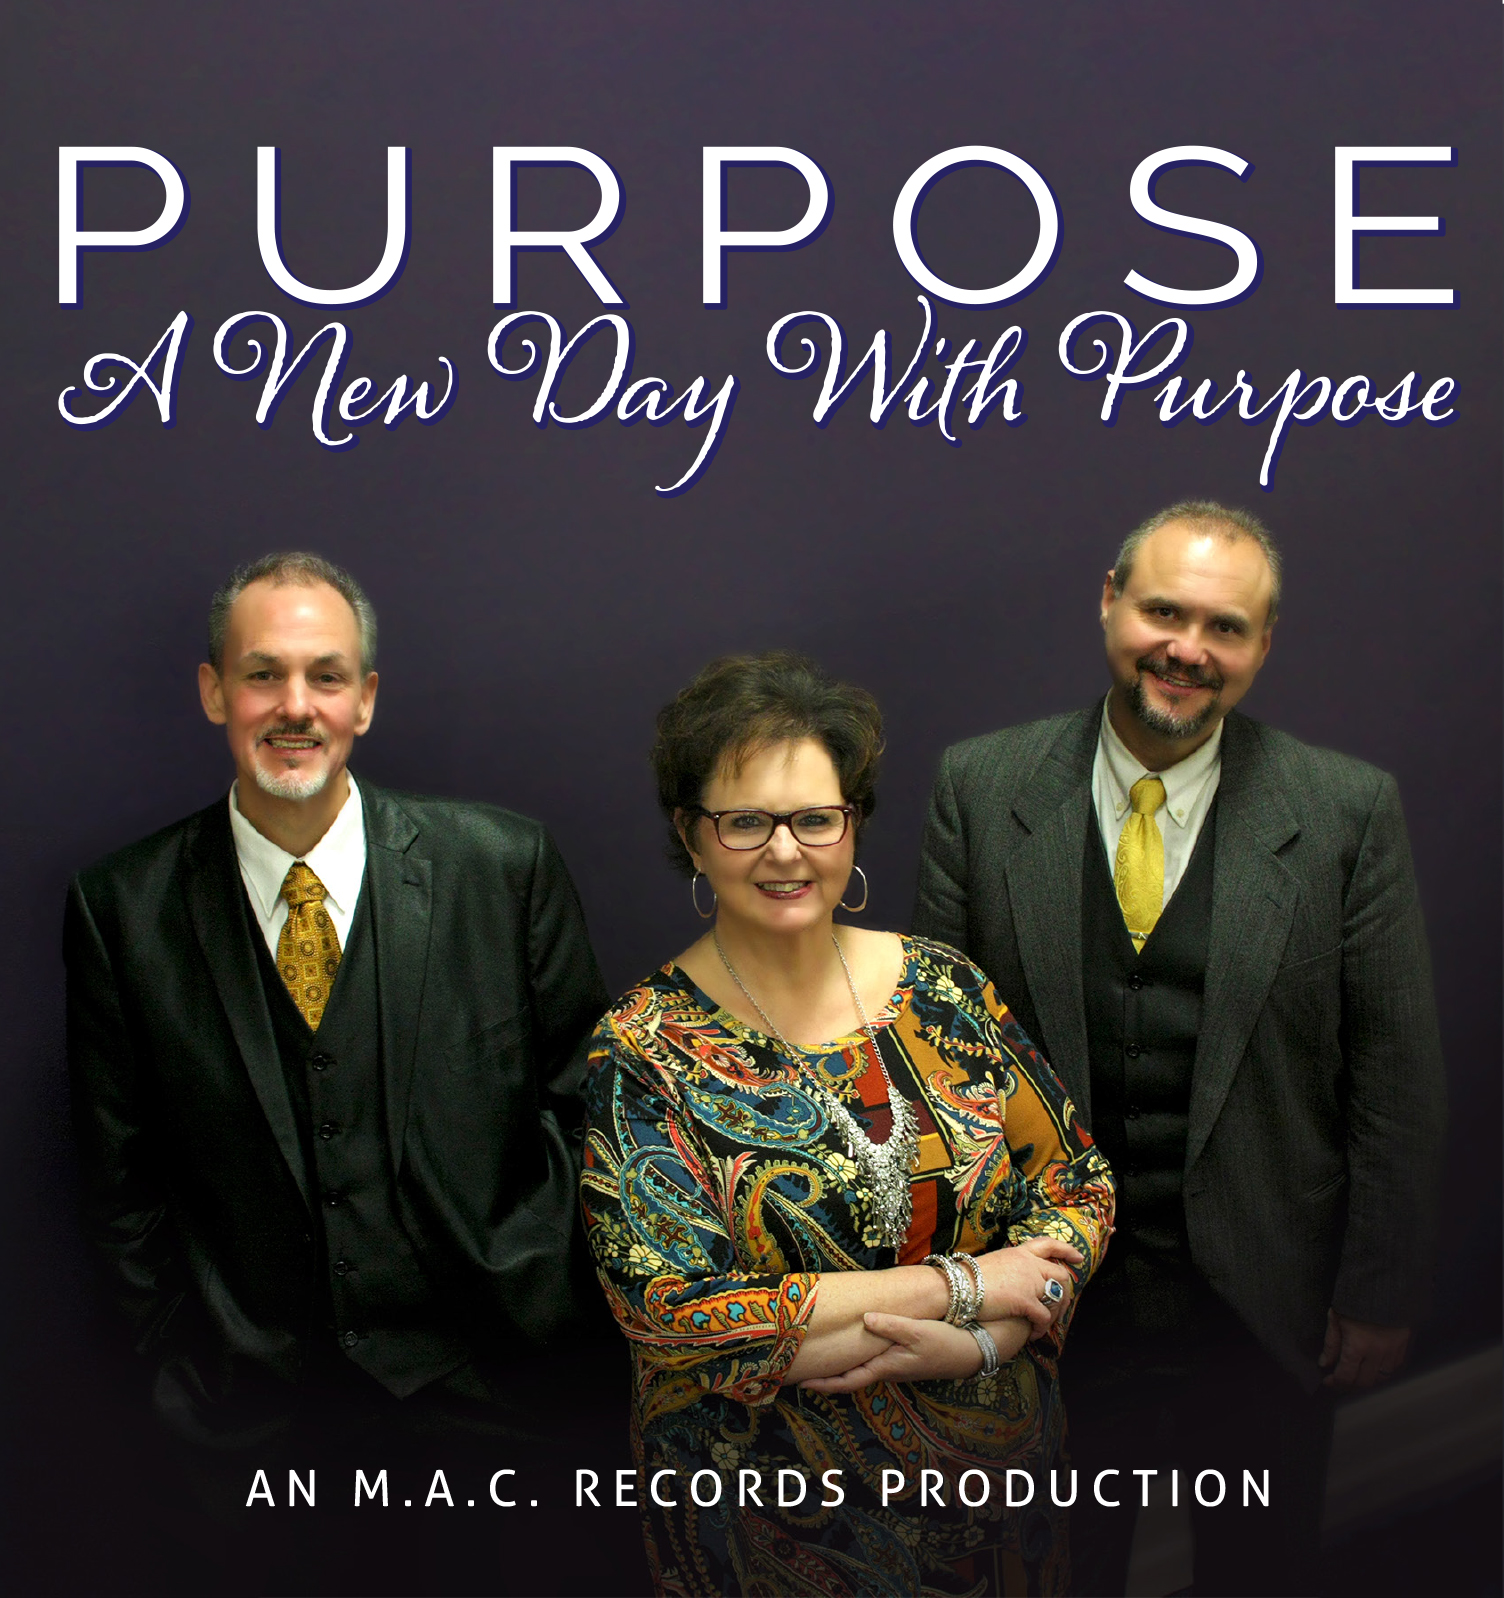 Purpose Joins M.A.C. Records & Releases New Project